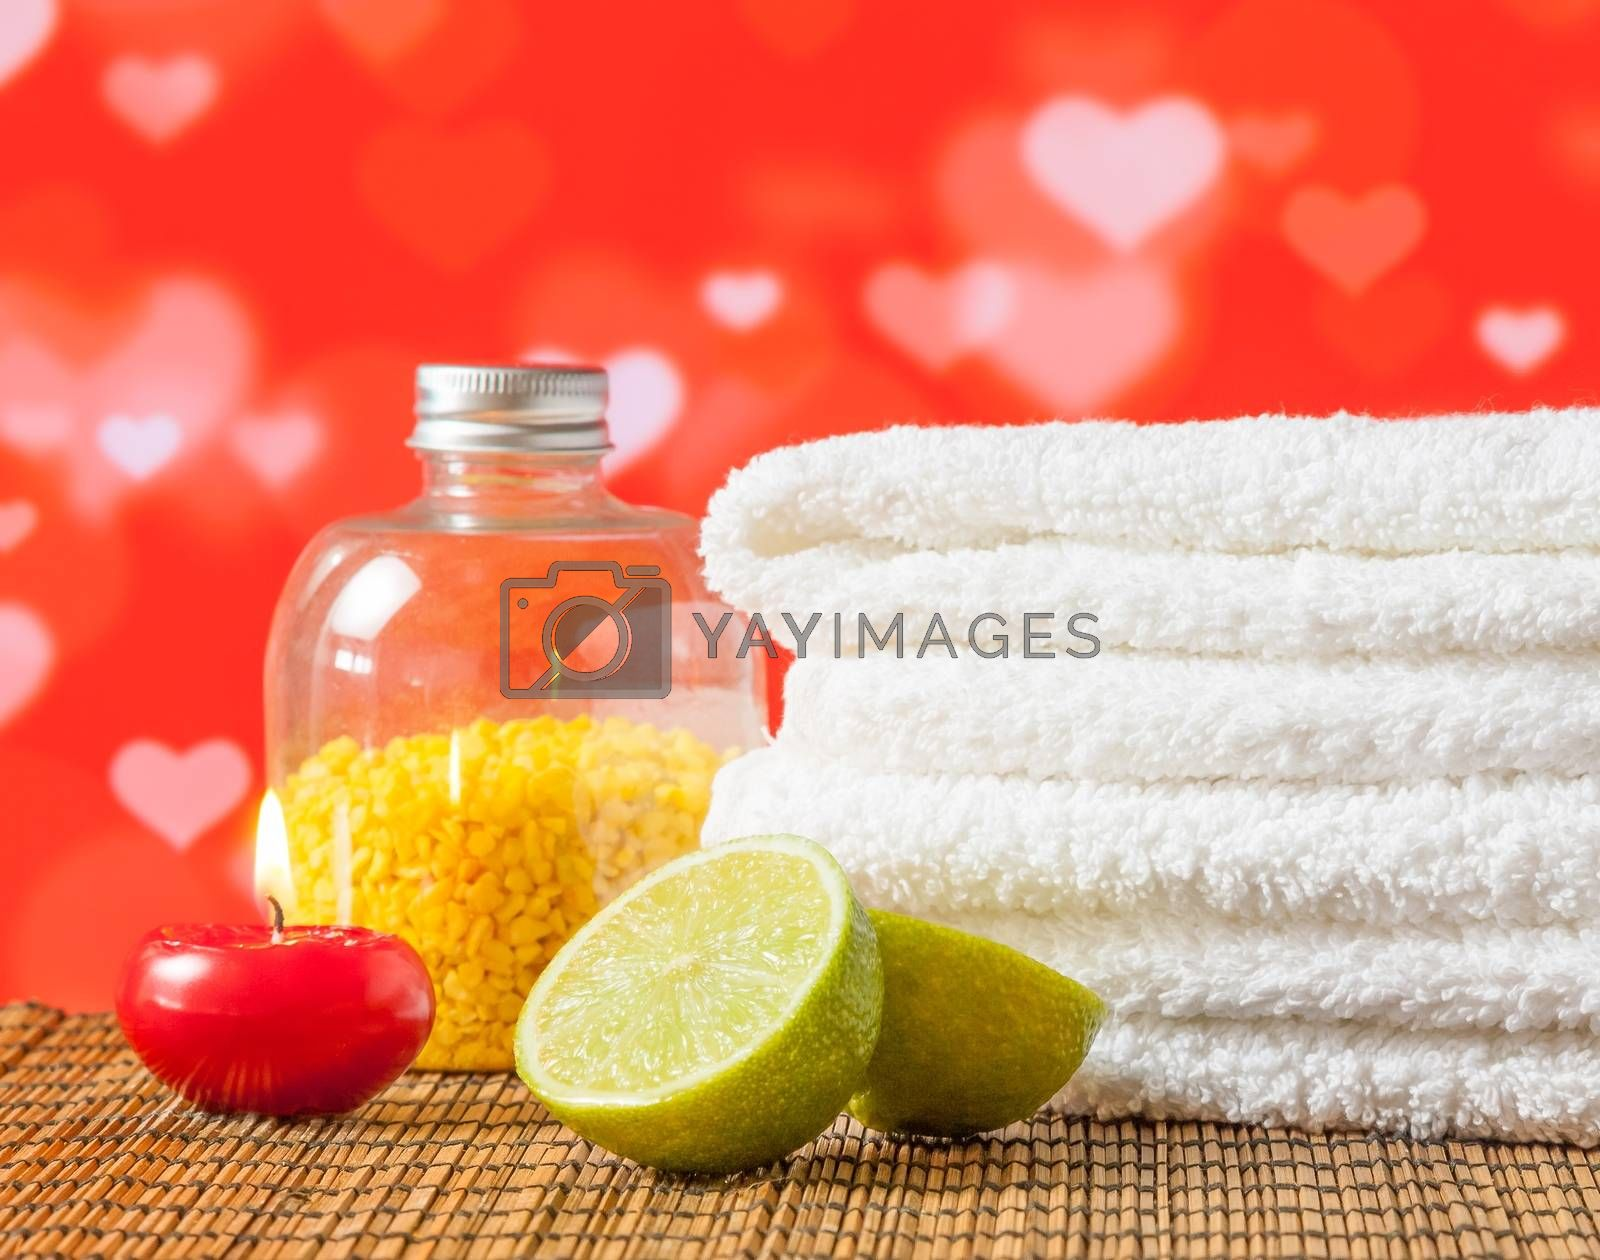 Spa massage border with towel stacked red candle and lime for valentine day by donfiore